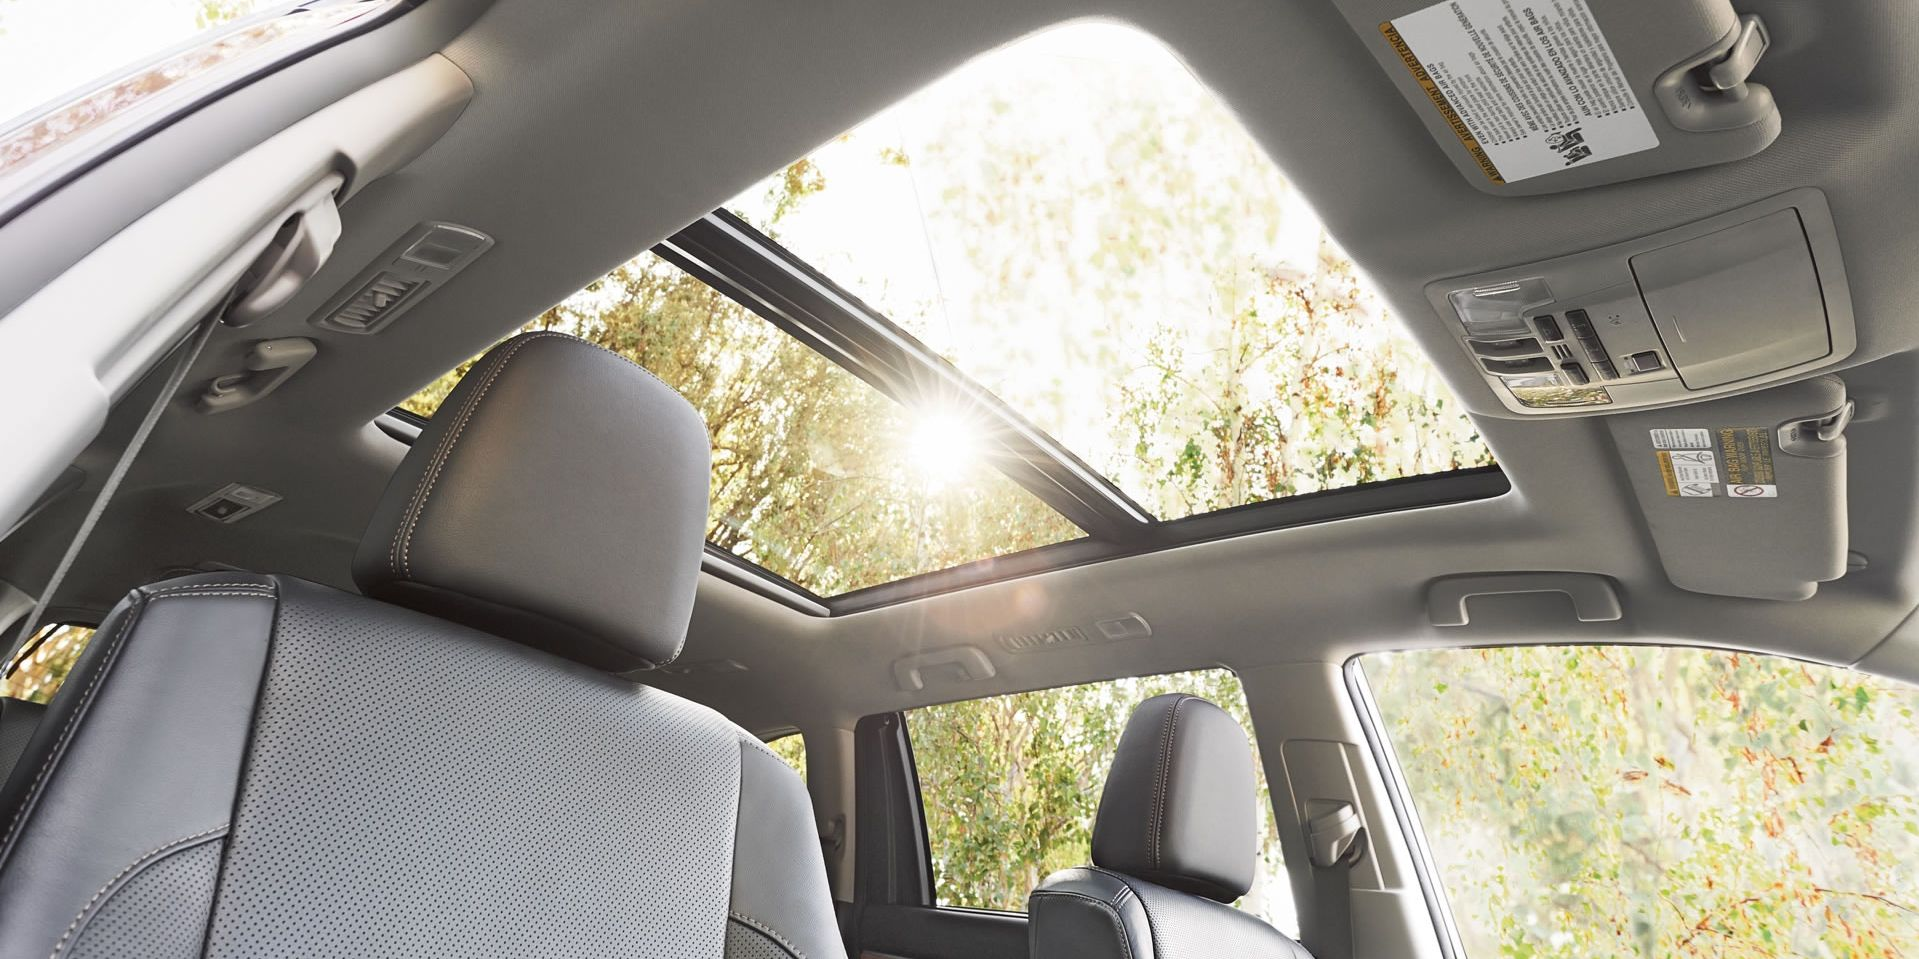 Let the Outside in with the Highlander's Expansive Moonroof!